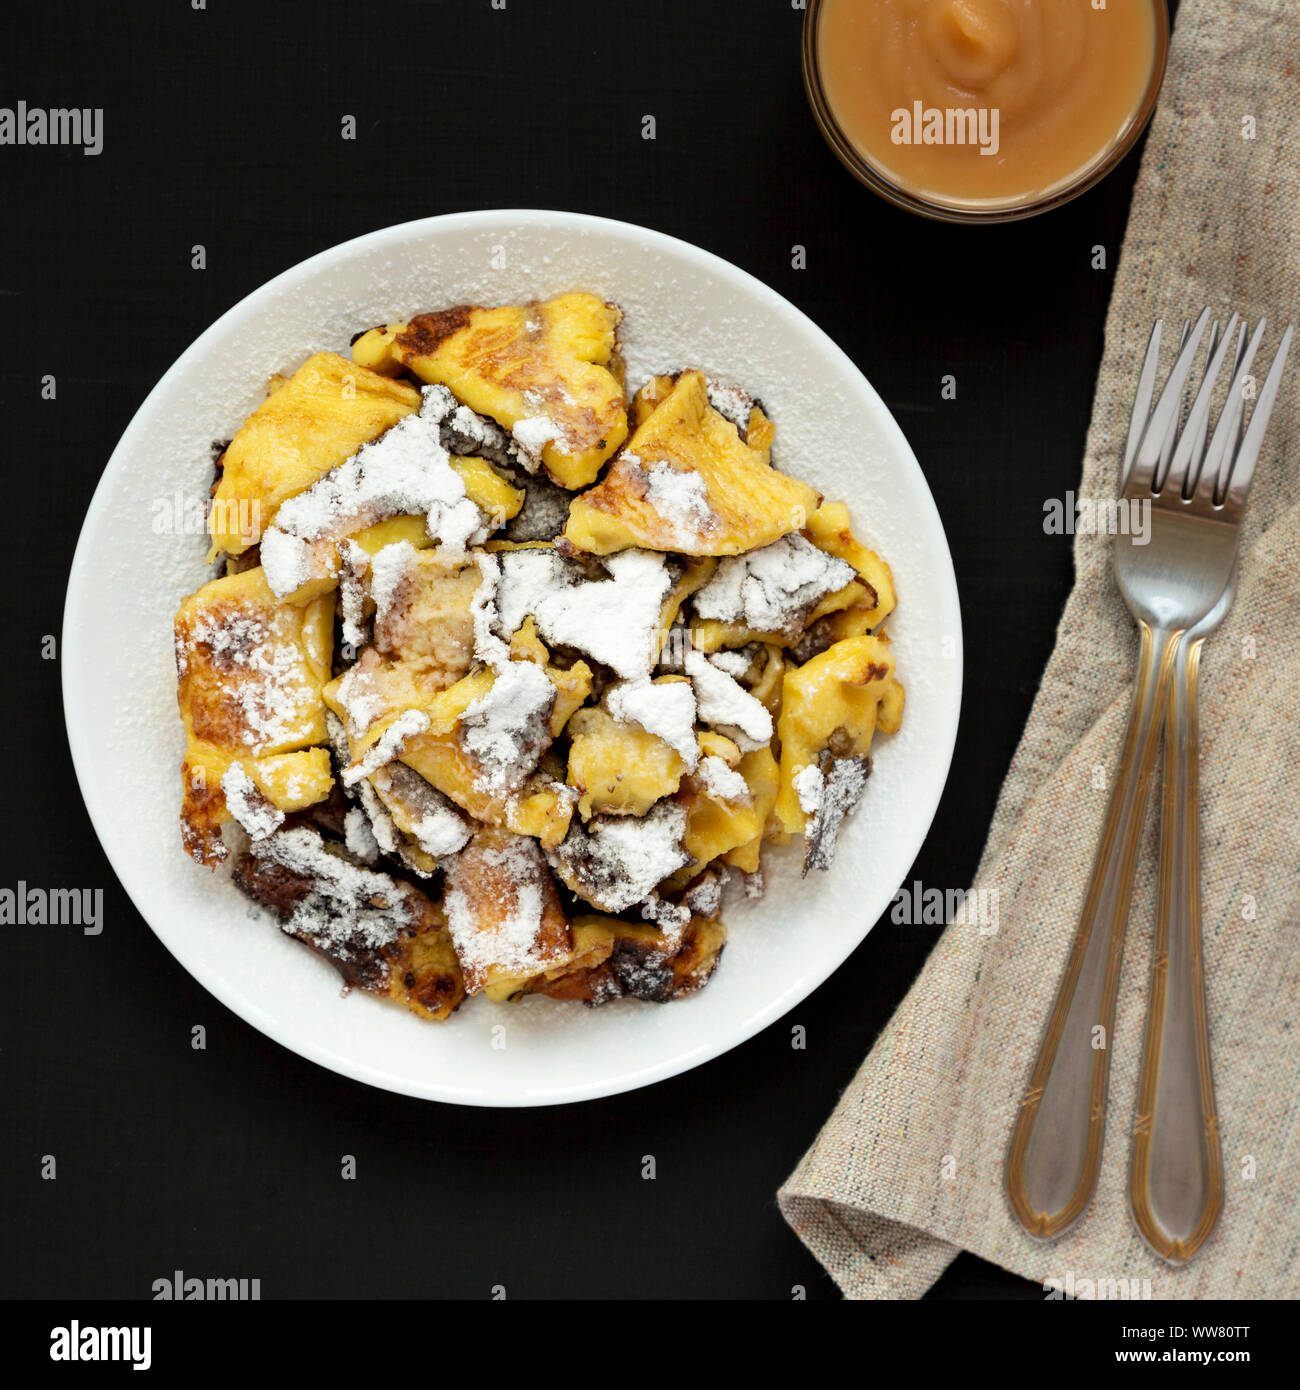 Top view, homemade german Kaiserschmarrn pancake with apple sauce on a black surface. Flat lay, overhead, from above. Close-up. Stock Photo